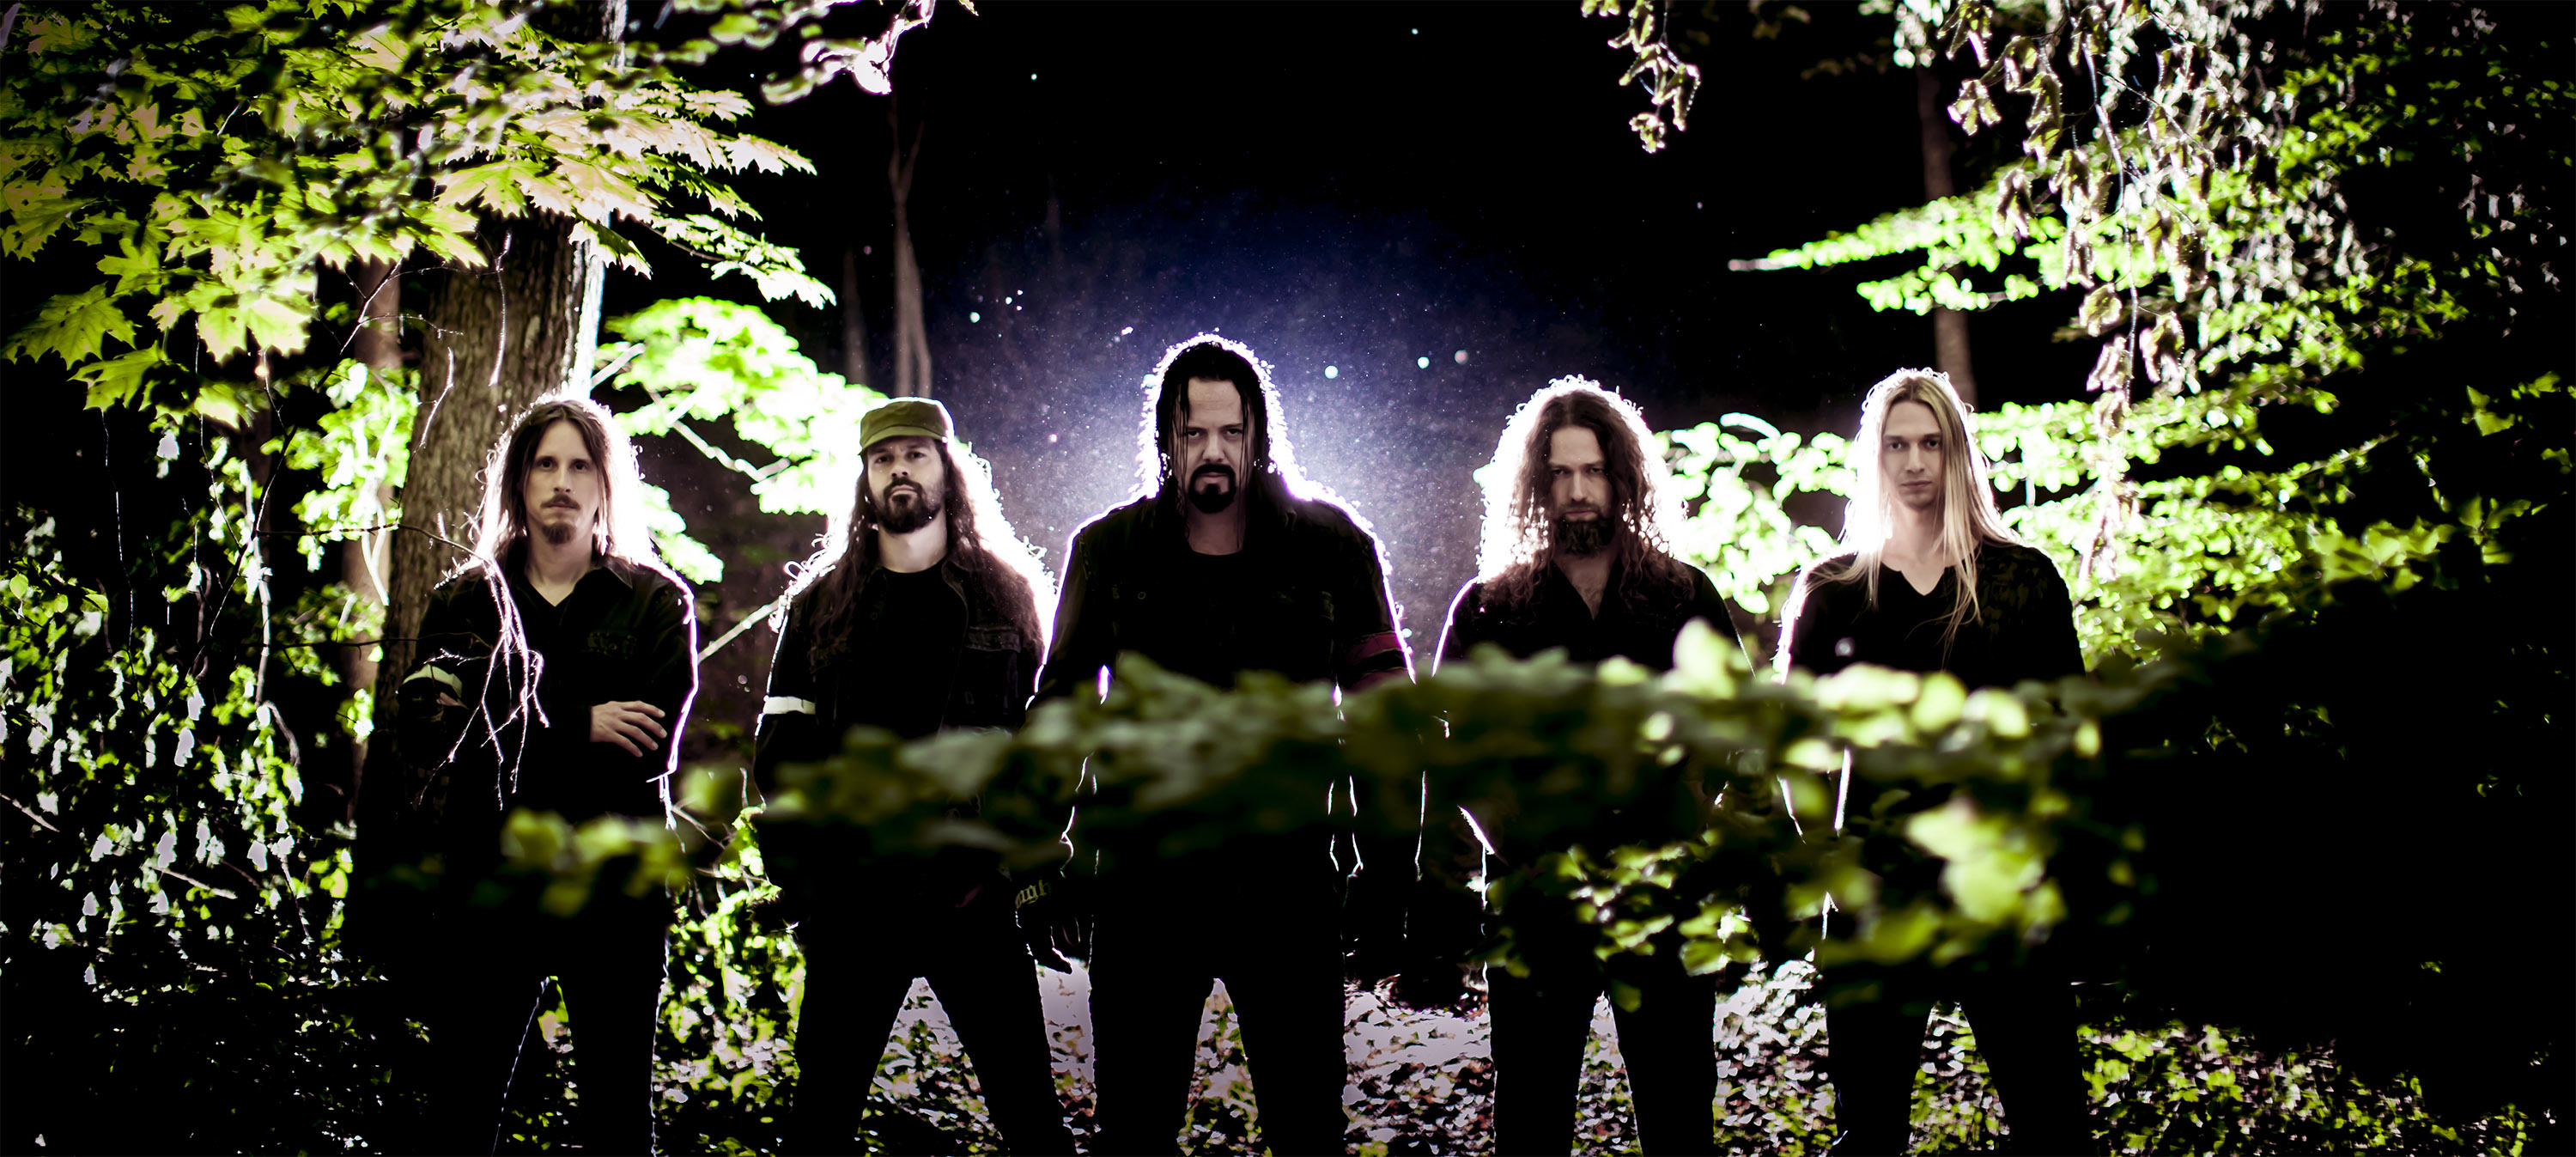 Evergrey Background